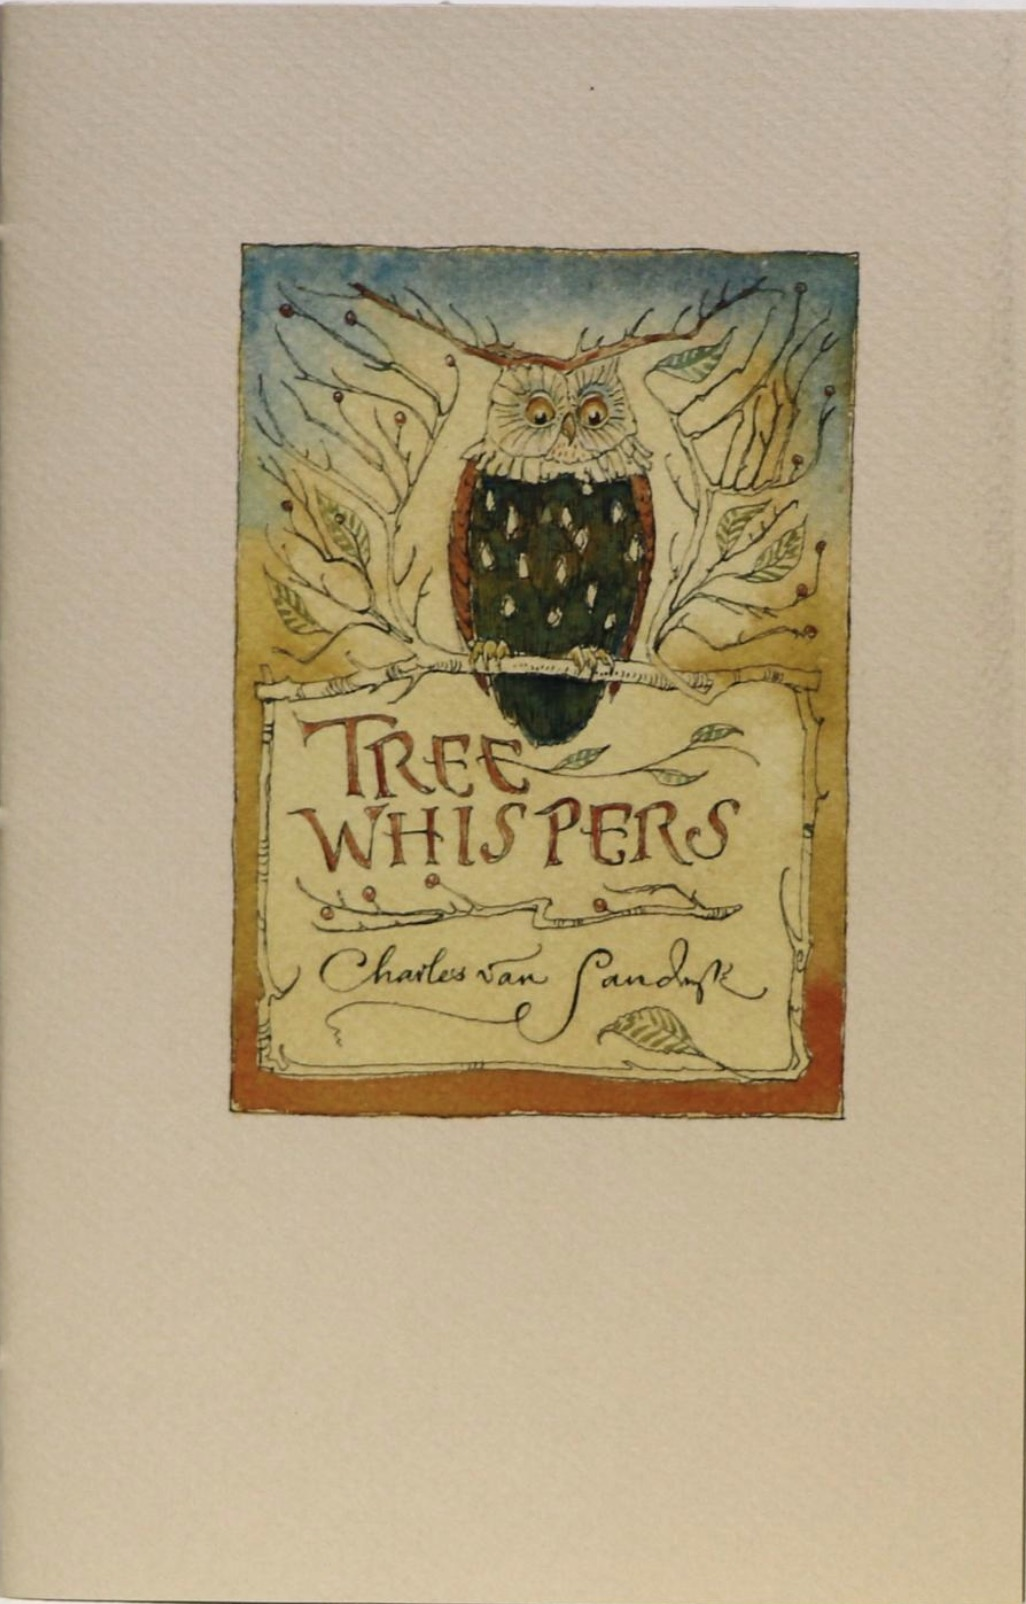 2014 CVS Tree Whispers Trial Cover